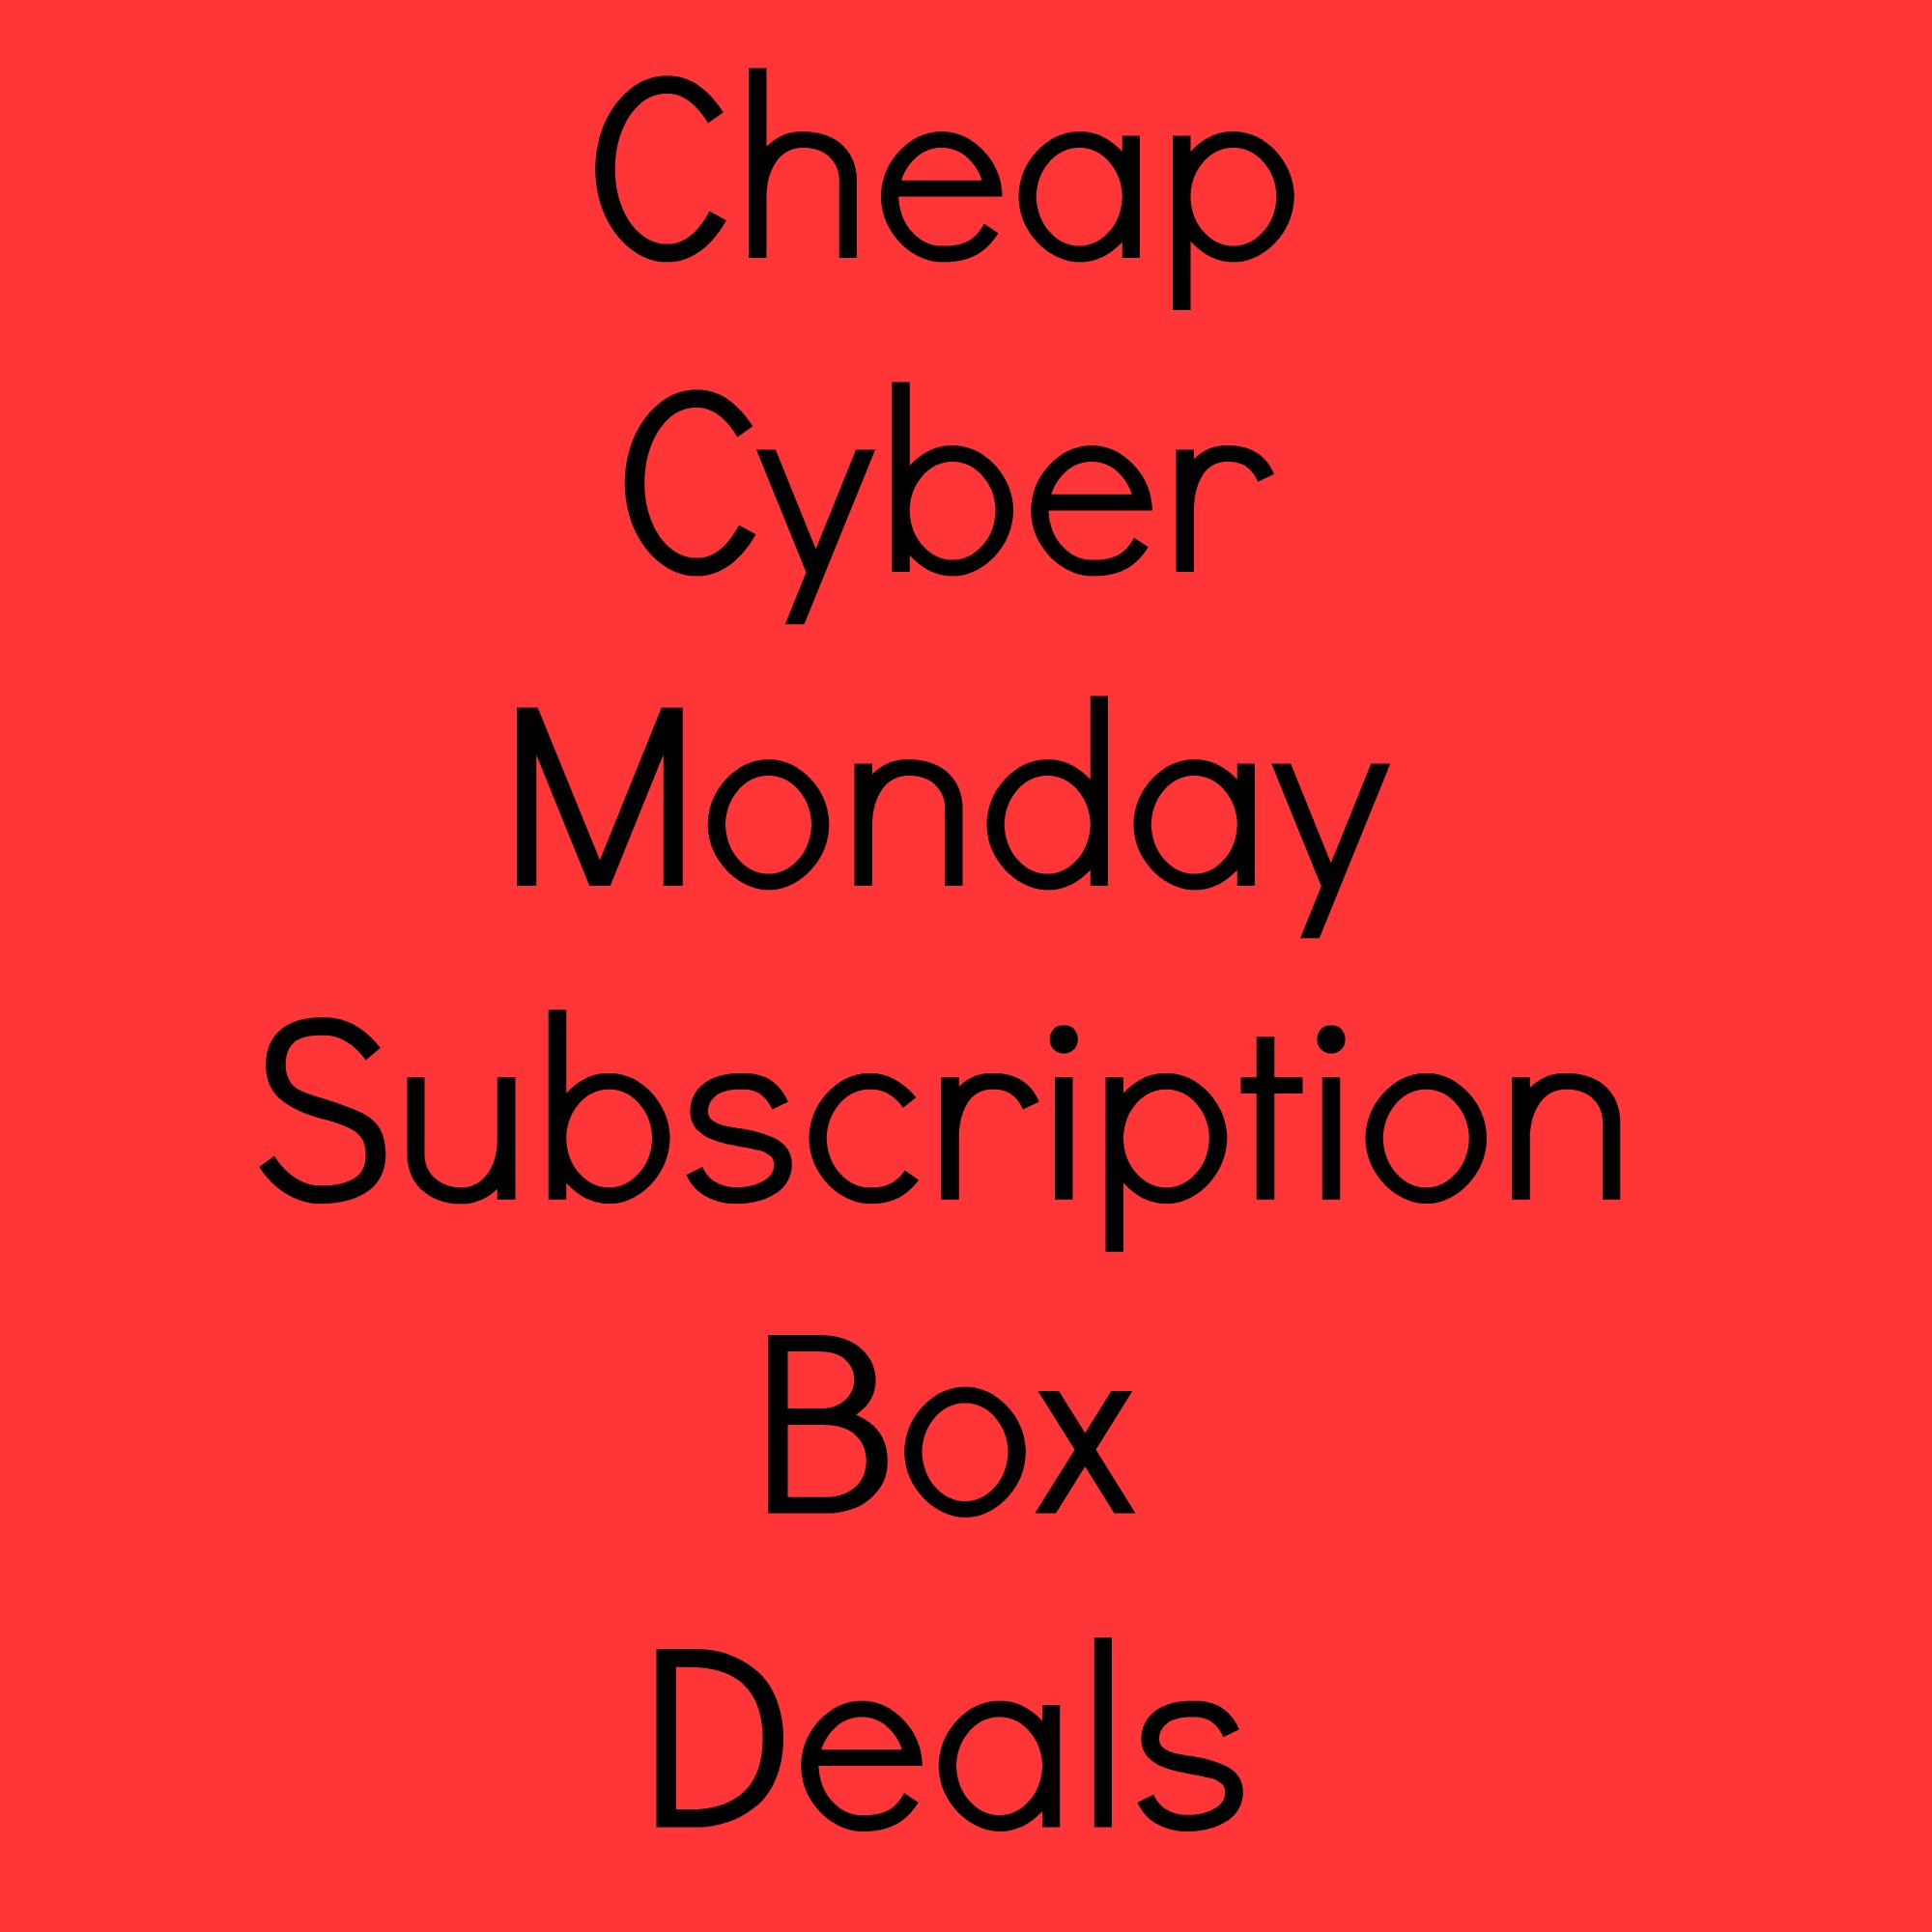 Cheap Cyber Monday Subscription Box Deals + Coupons 2014